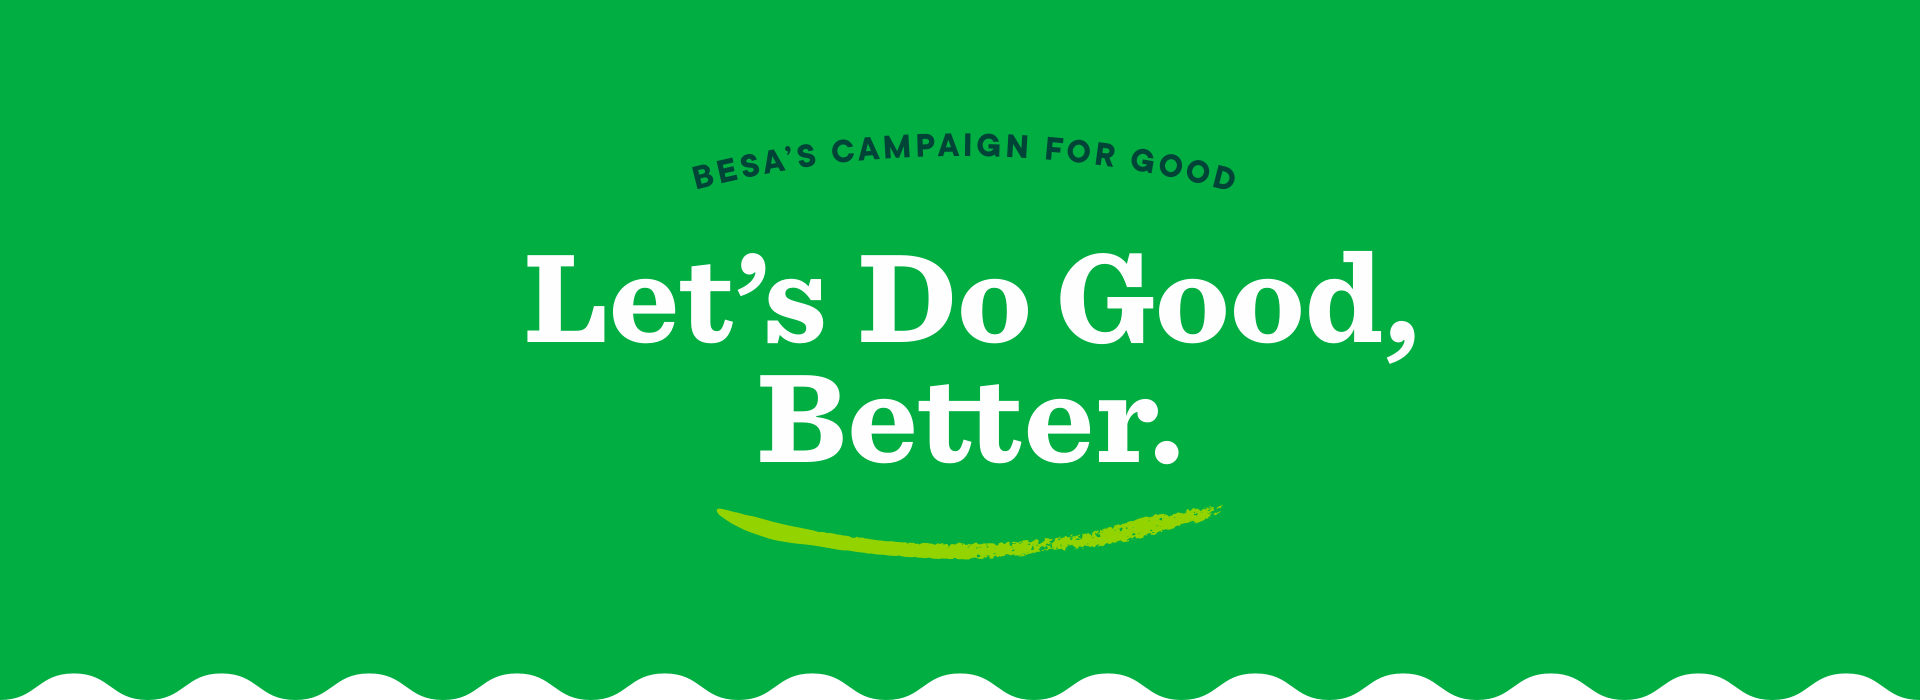 Let's Do Good, Better.